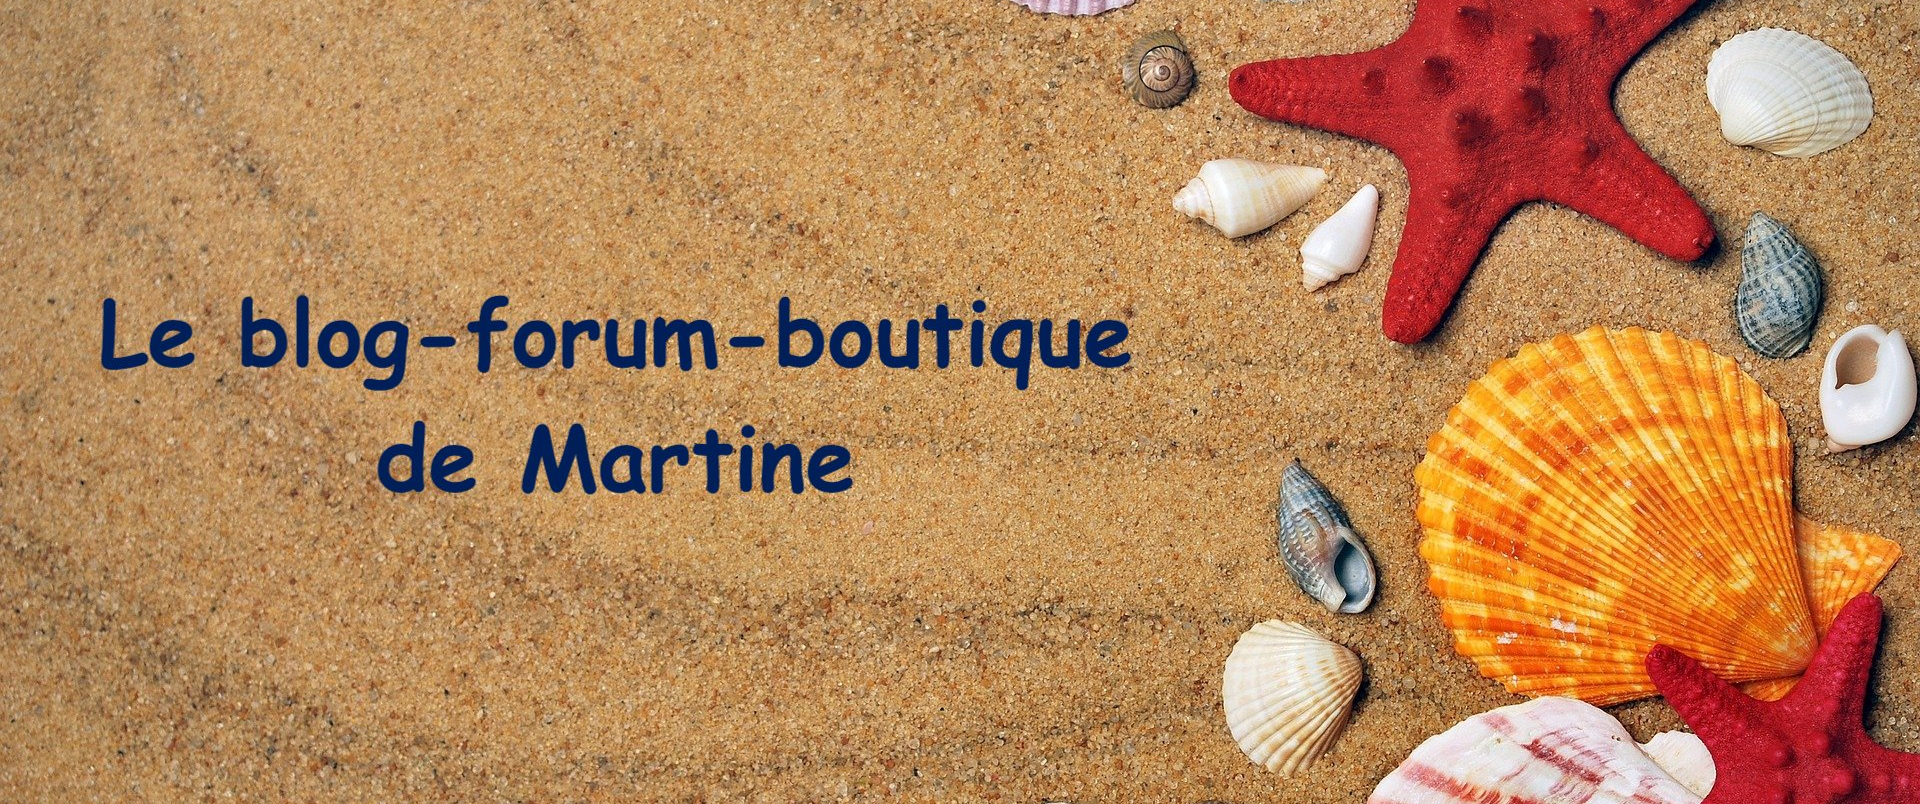 Le blog-forum-boutique de Martine